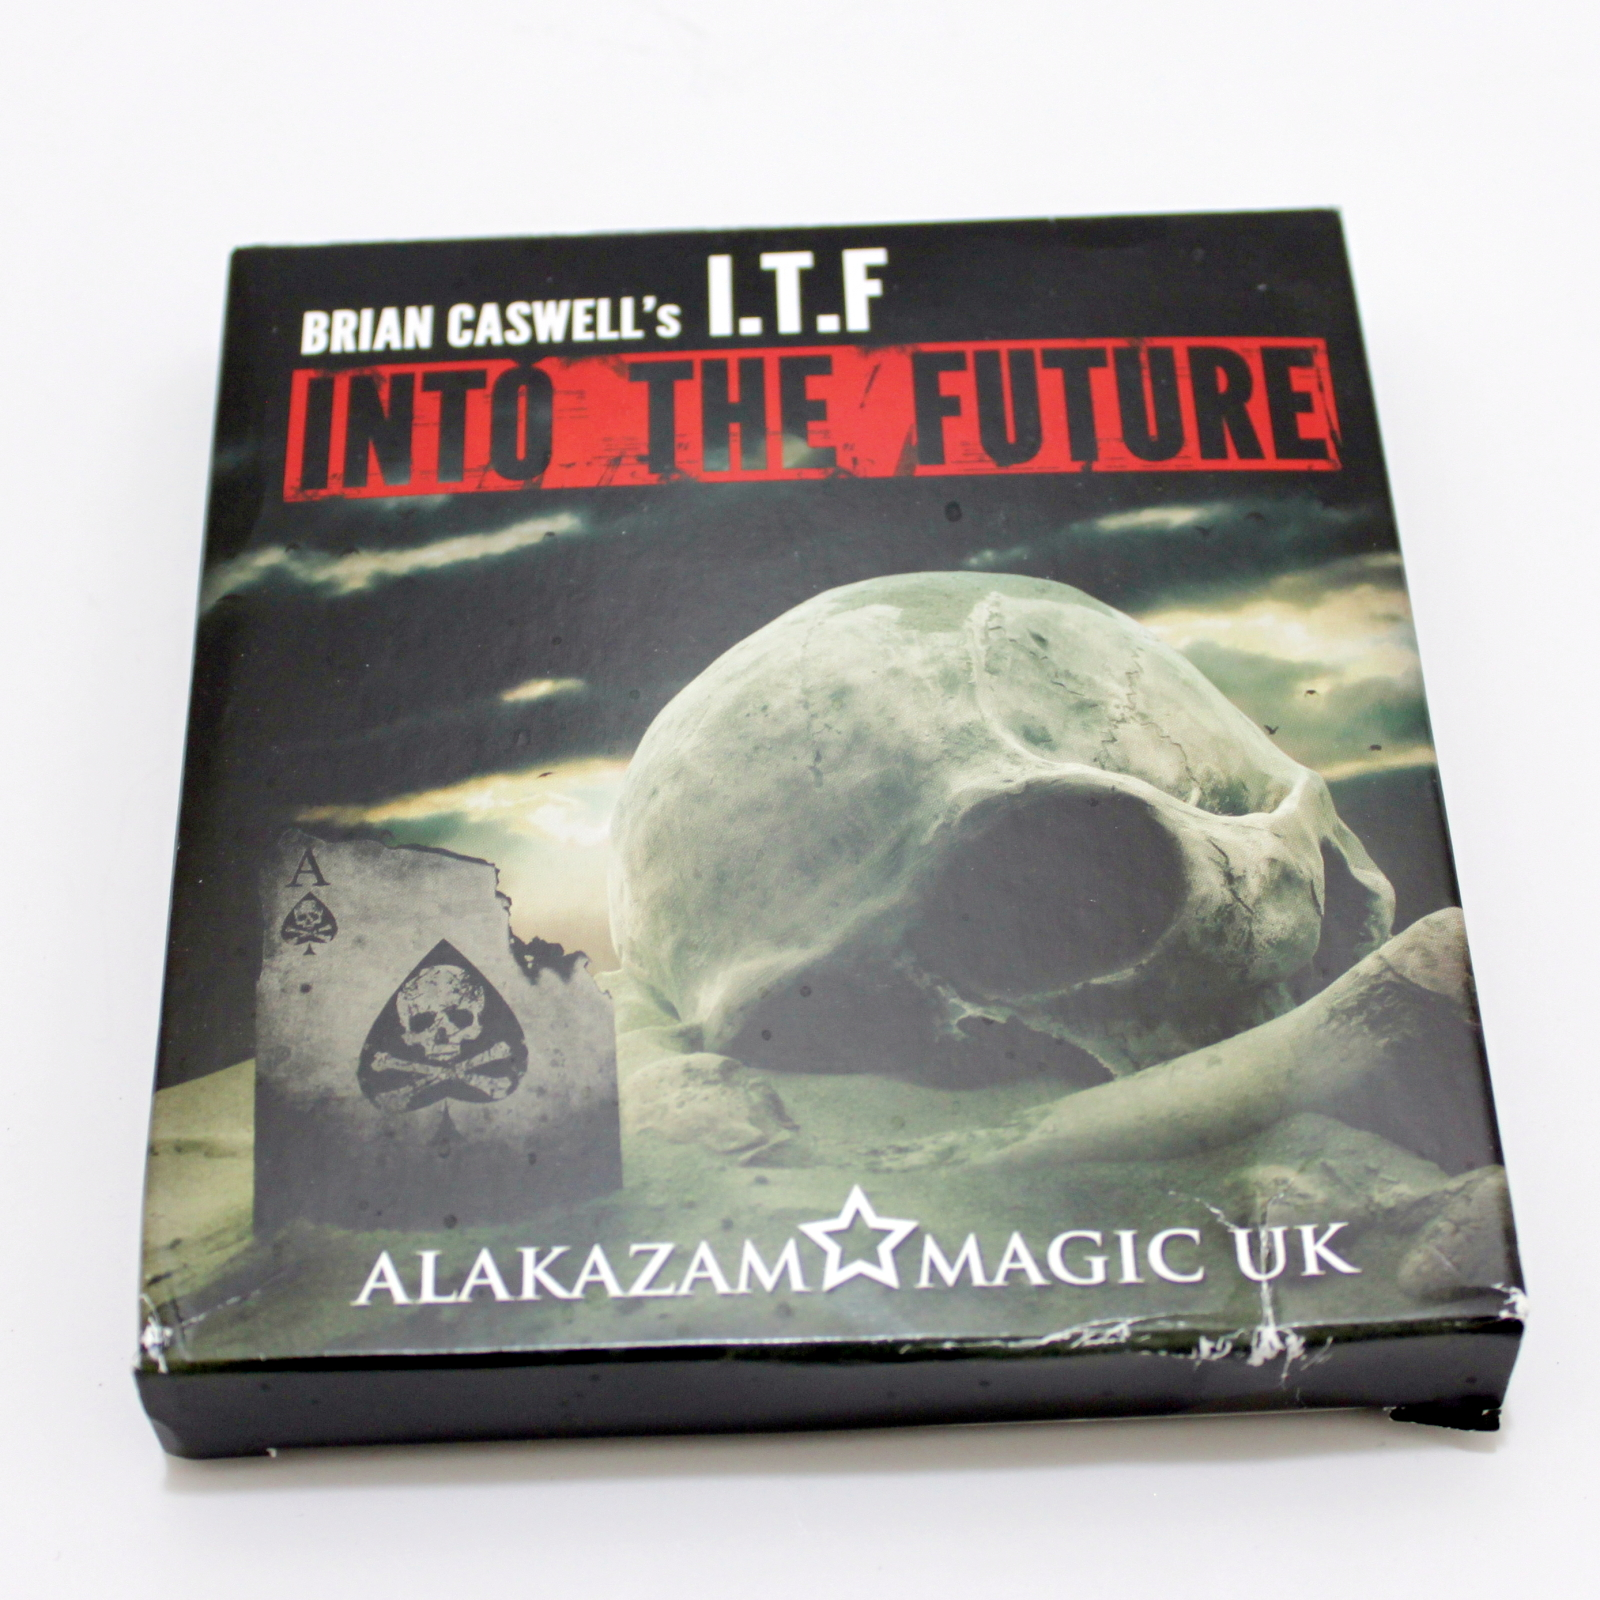 Into The Future (I.T.F.) by Brian Caswell